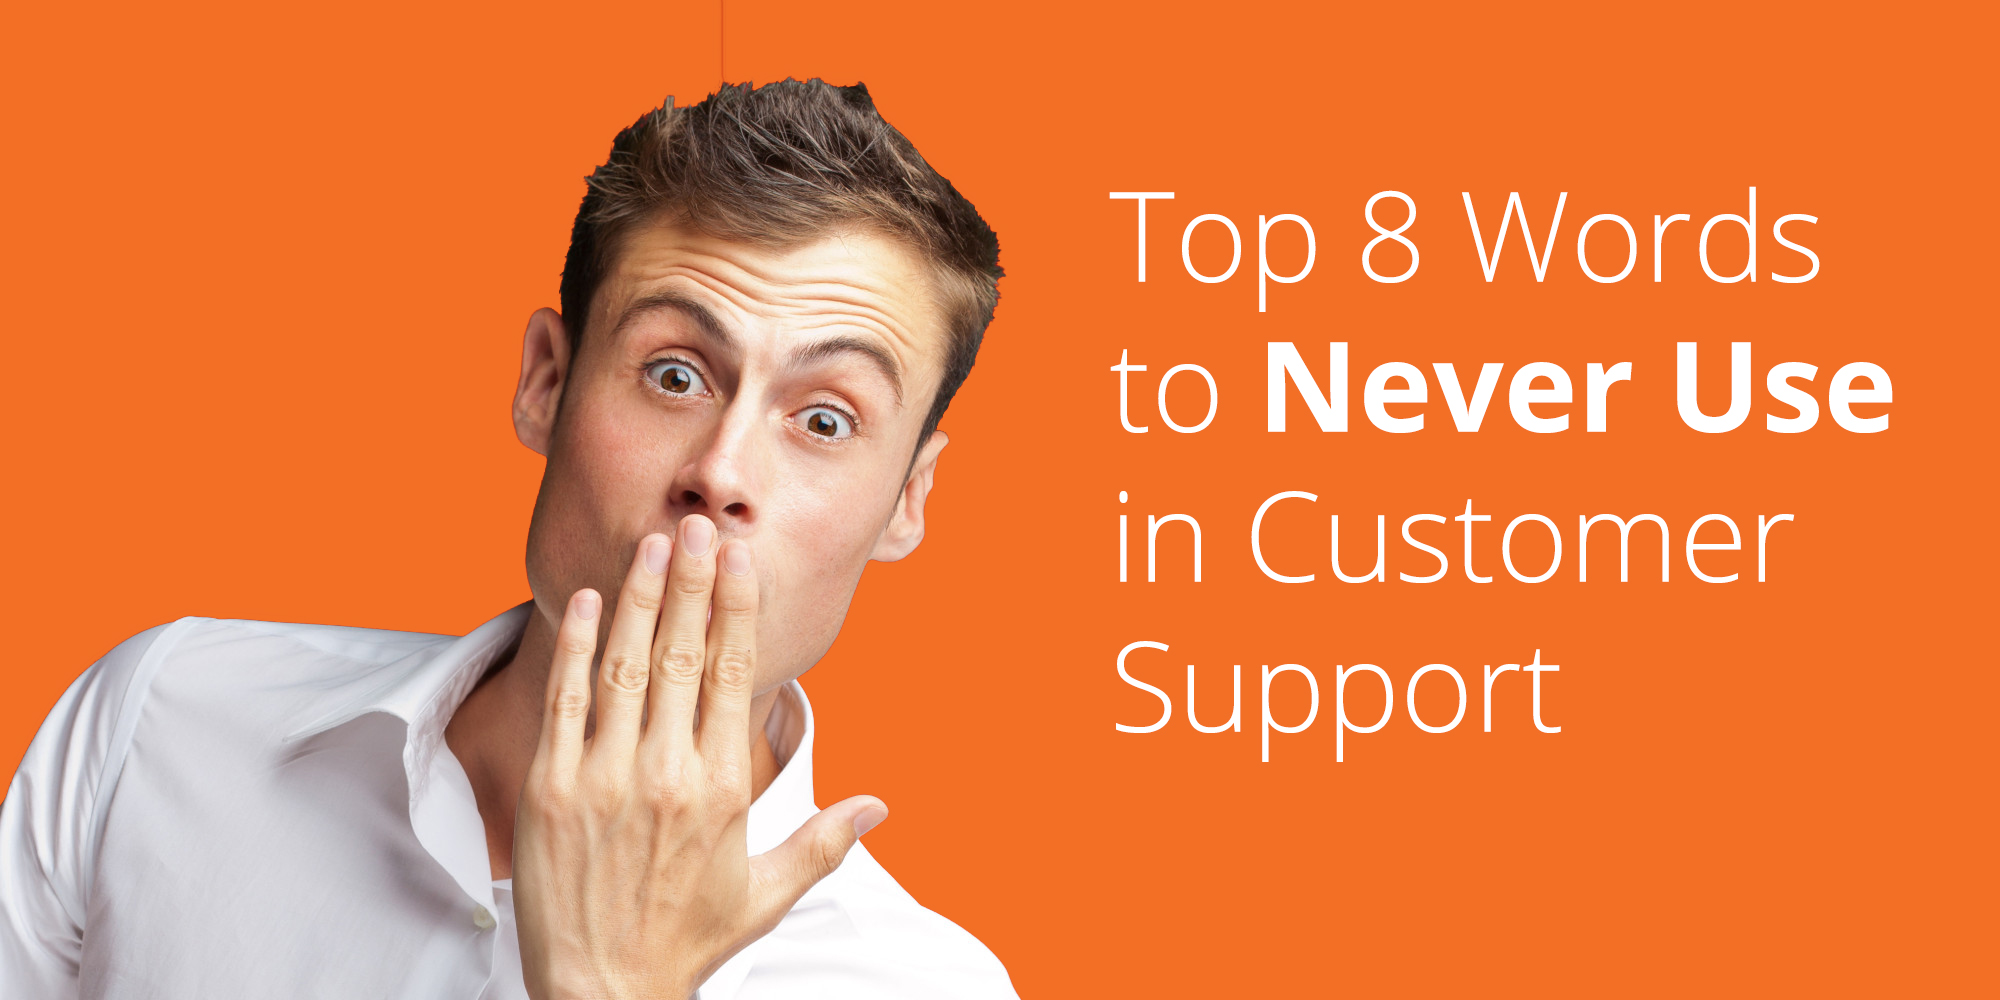 The Top Words You Should Avoid in Customer Service